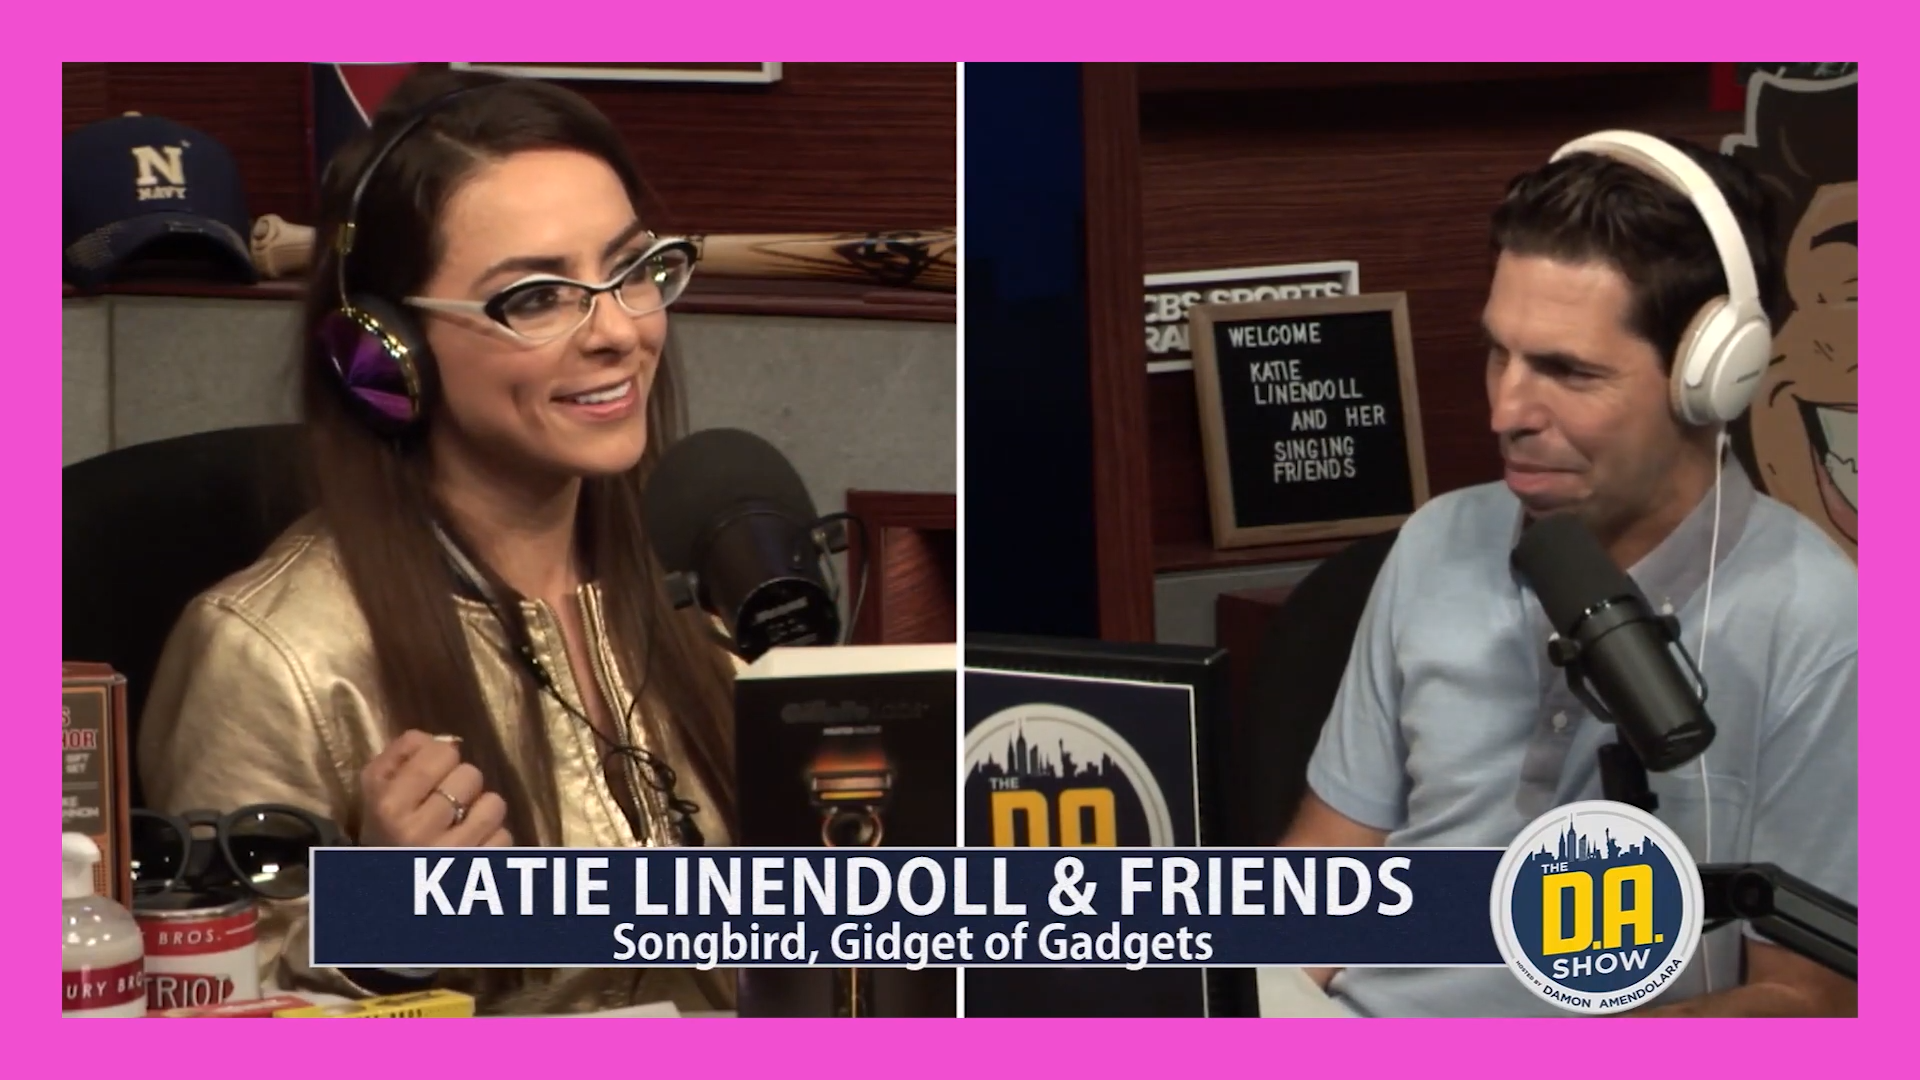 Katie Linendoll on _The DA Show__ Erie, PA, Father's Day Gadgets, Broadway's Next Hit Musical 0-14 screenshot.png